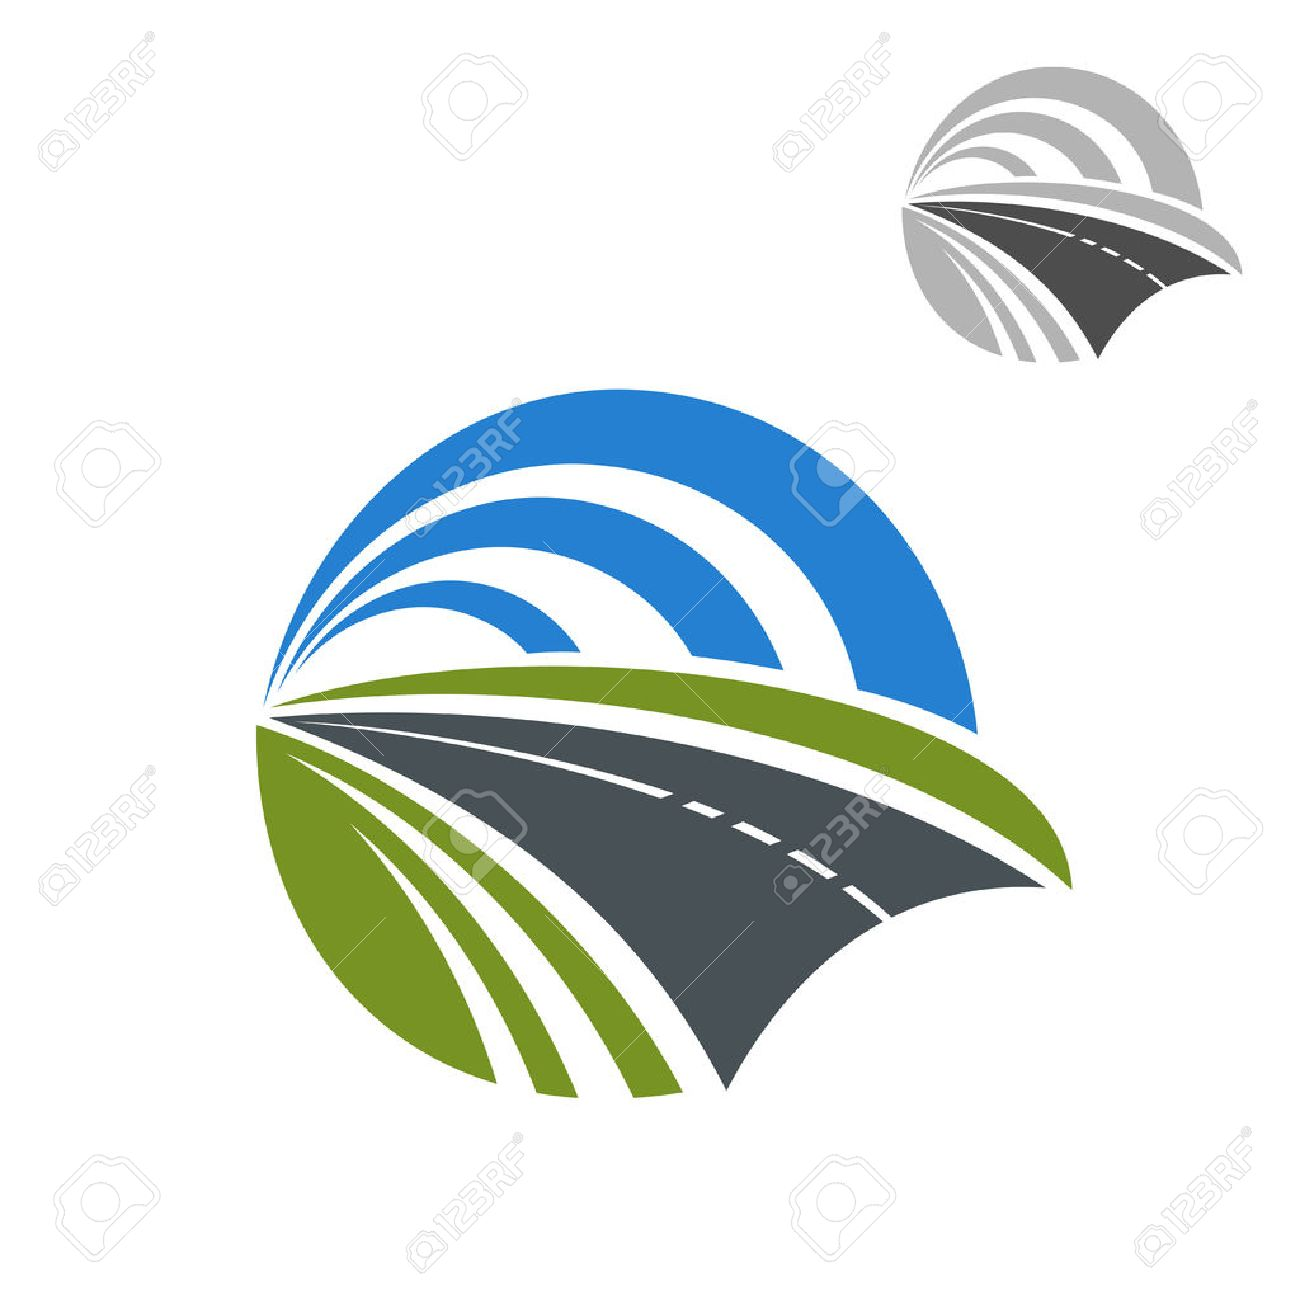 Speedy road icon with green roadsides disappearing to a vanishing point within a circle of blue sky, for travel or transportation themes design Stock Vector - 48314359